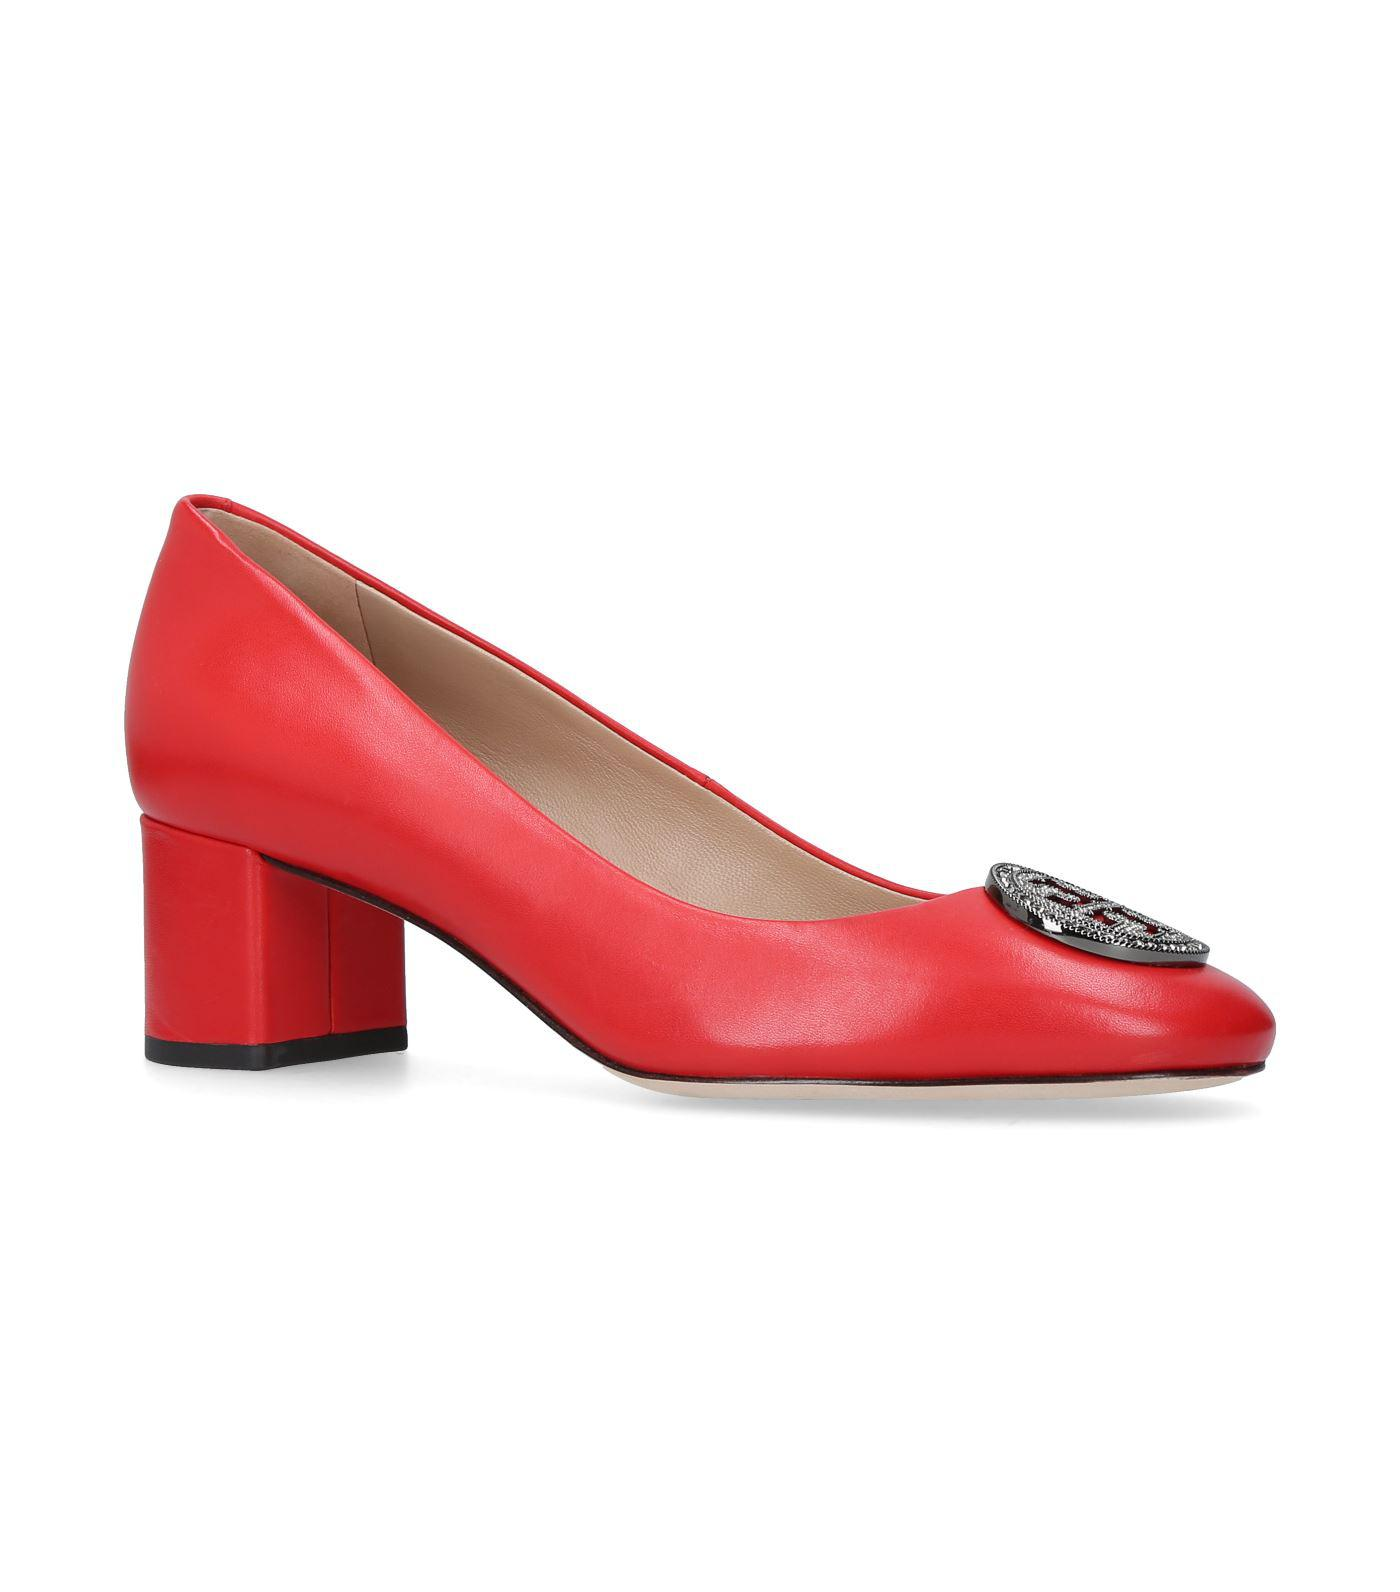 b1b6f78b68b Lyst - Tory Burch Liana Pump 45 in Red